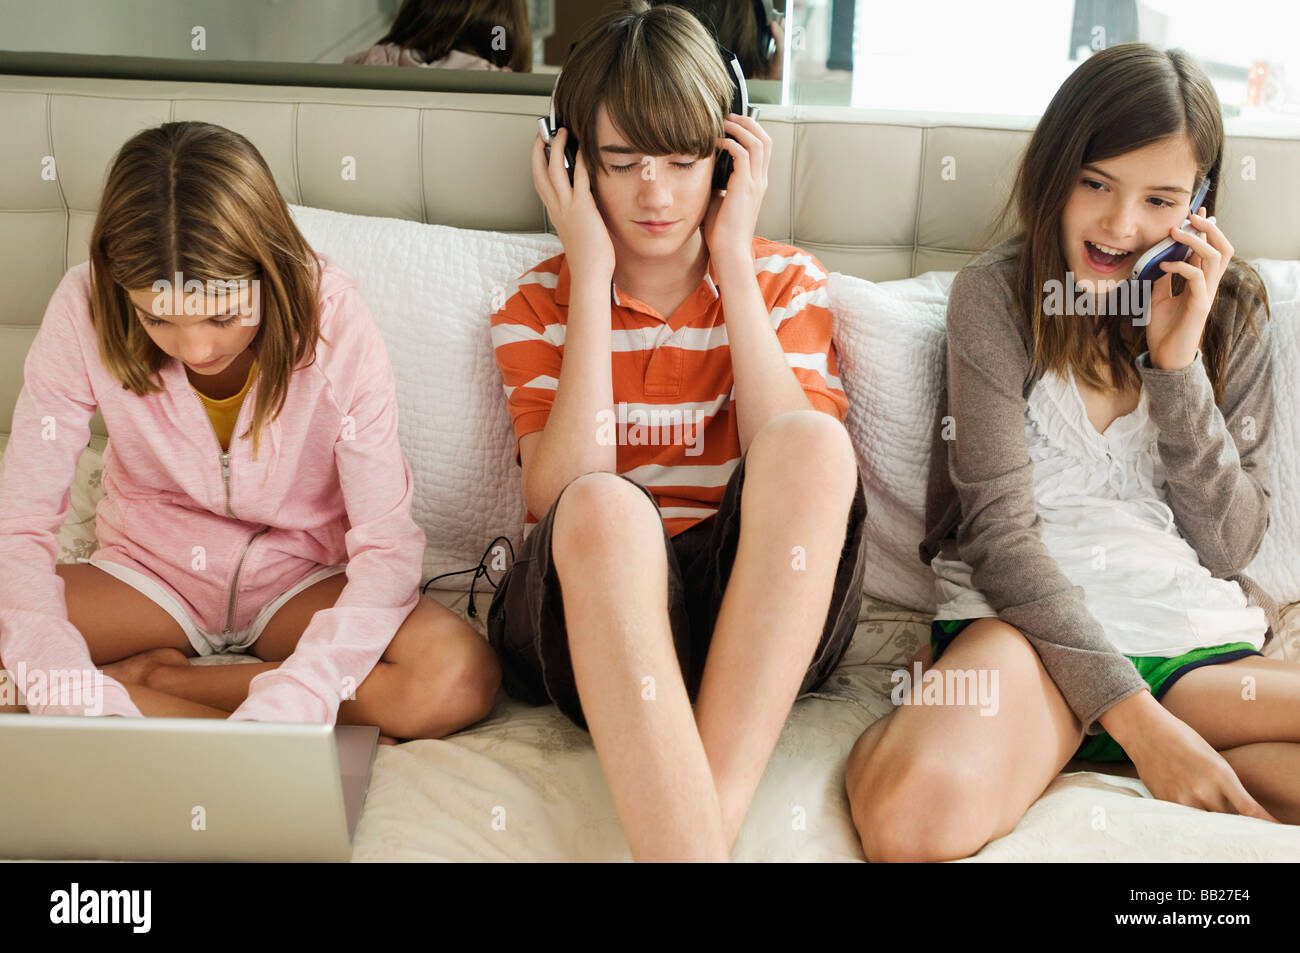 Boy Sitting With Two Girls On The Bed Stock Photo 24021372 Alamy